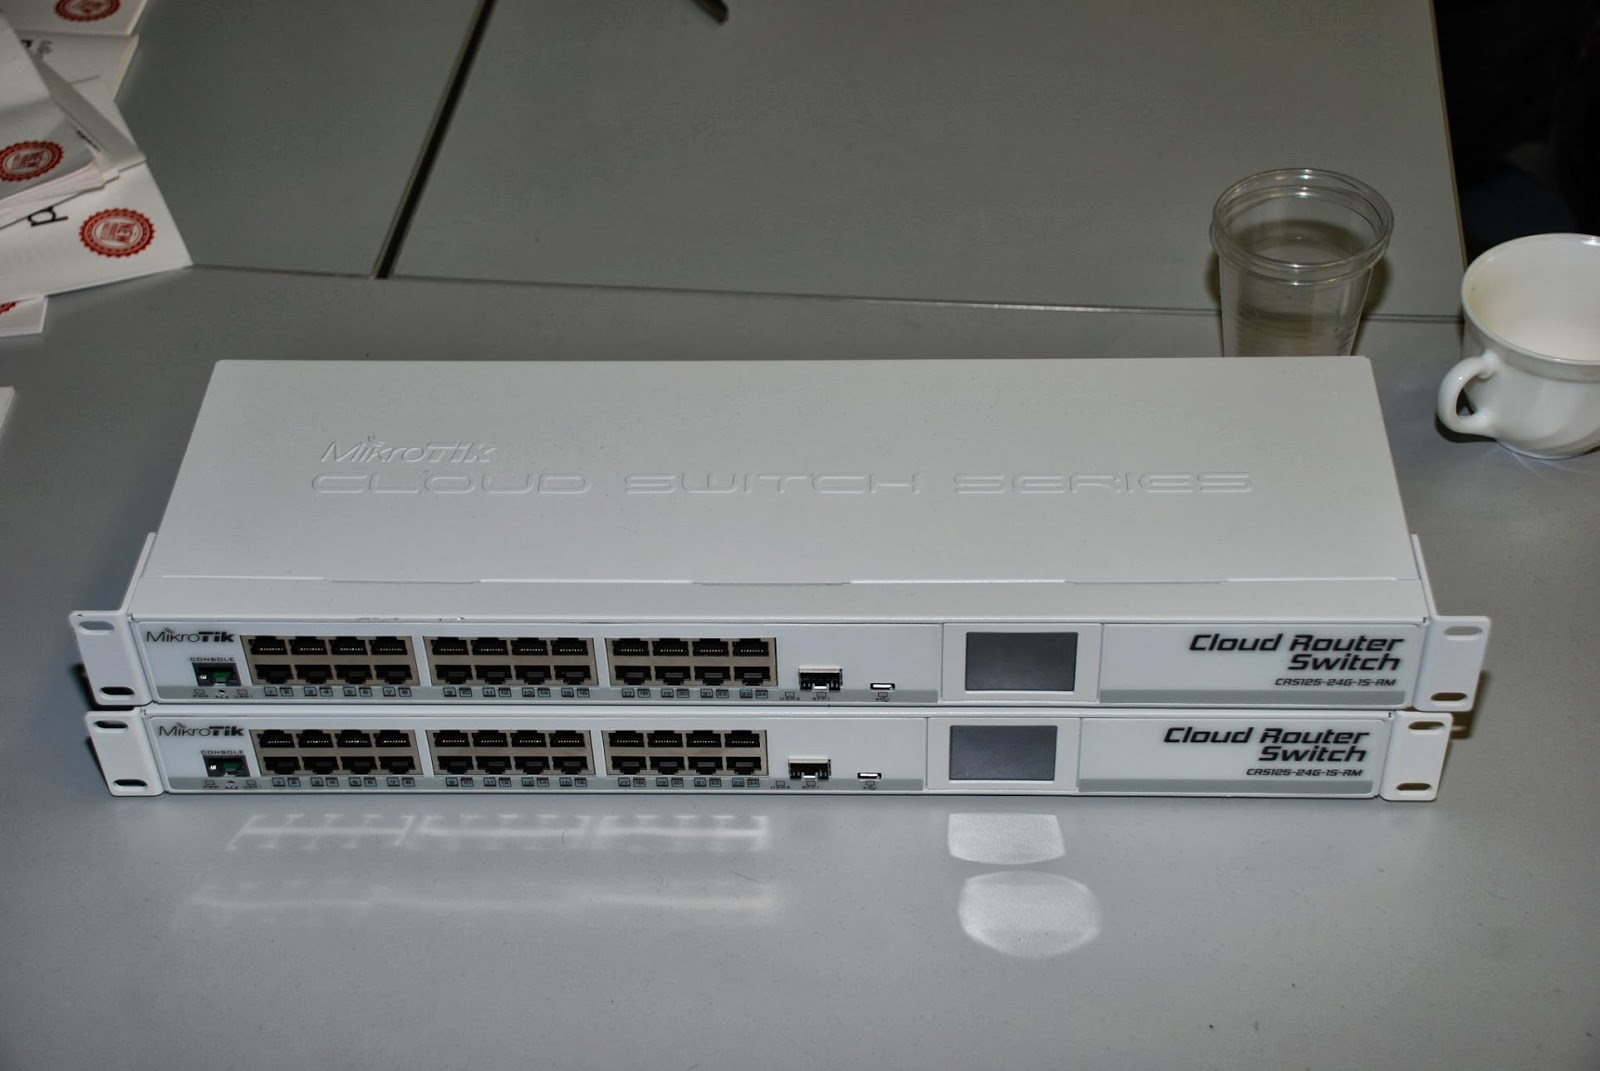 Wificentrum 24 Port Cloud Router Switch Crs125 24g 15 Rm